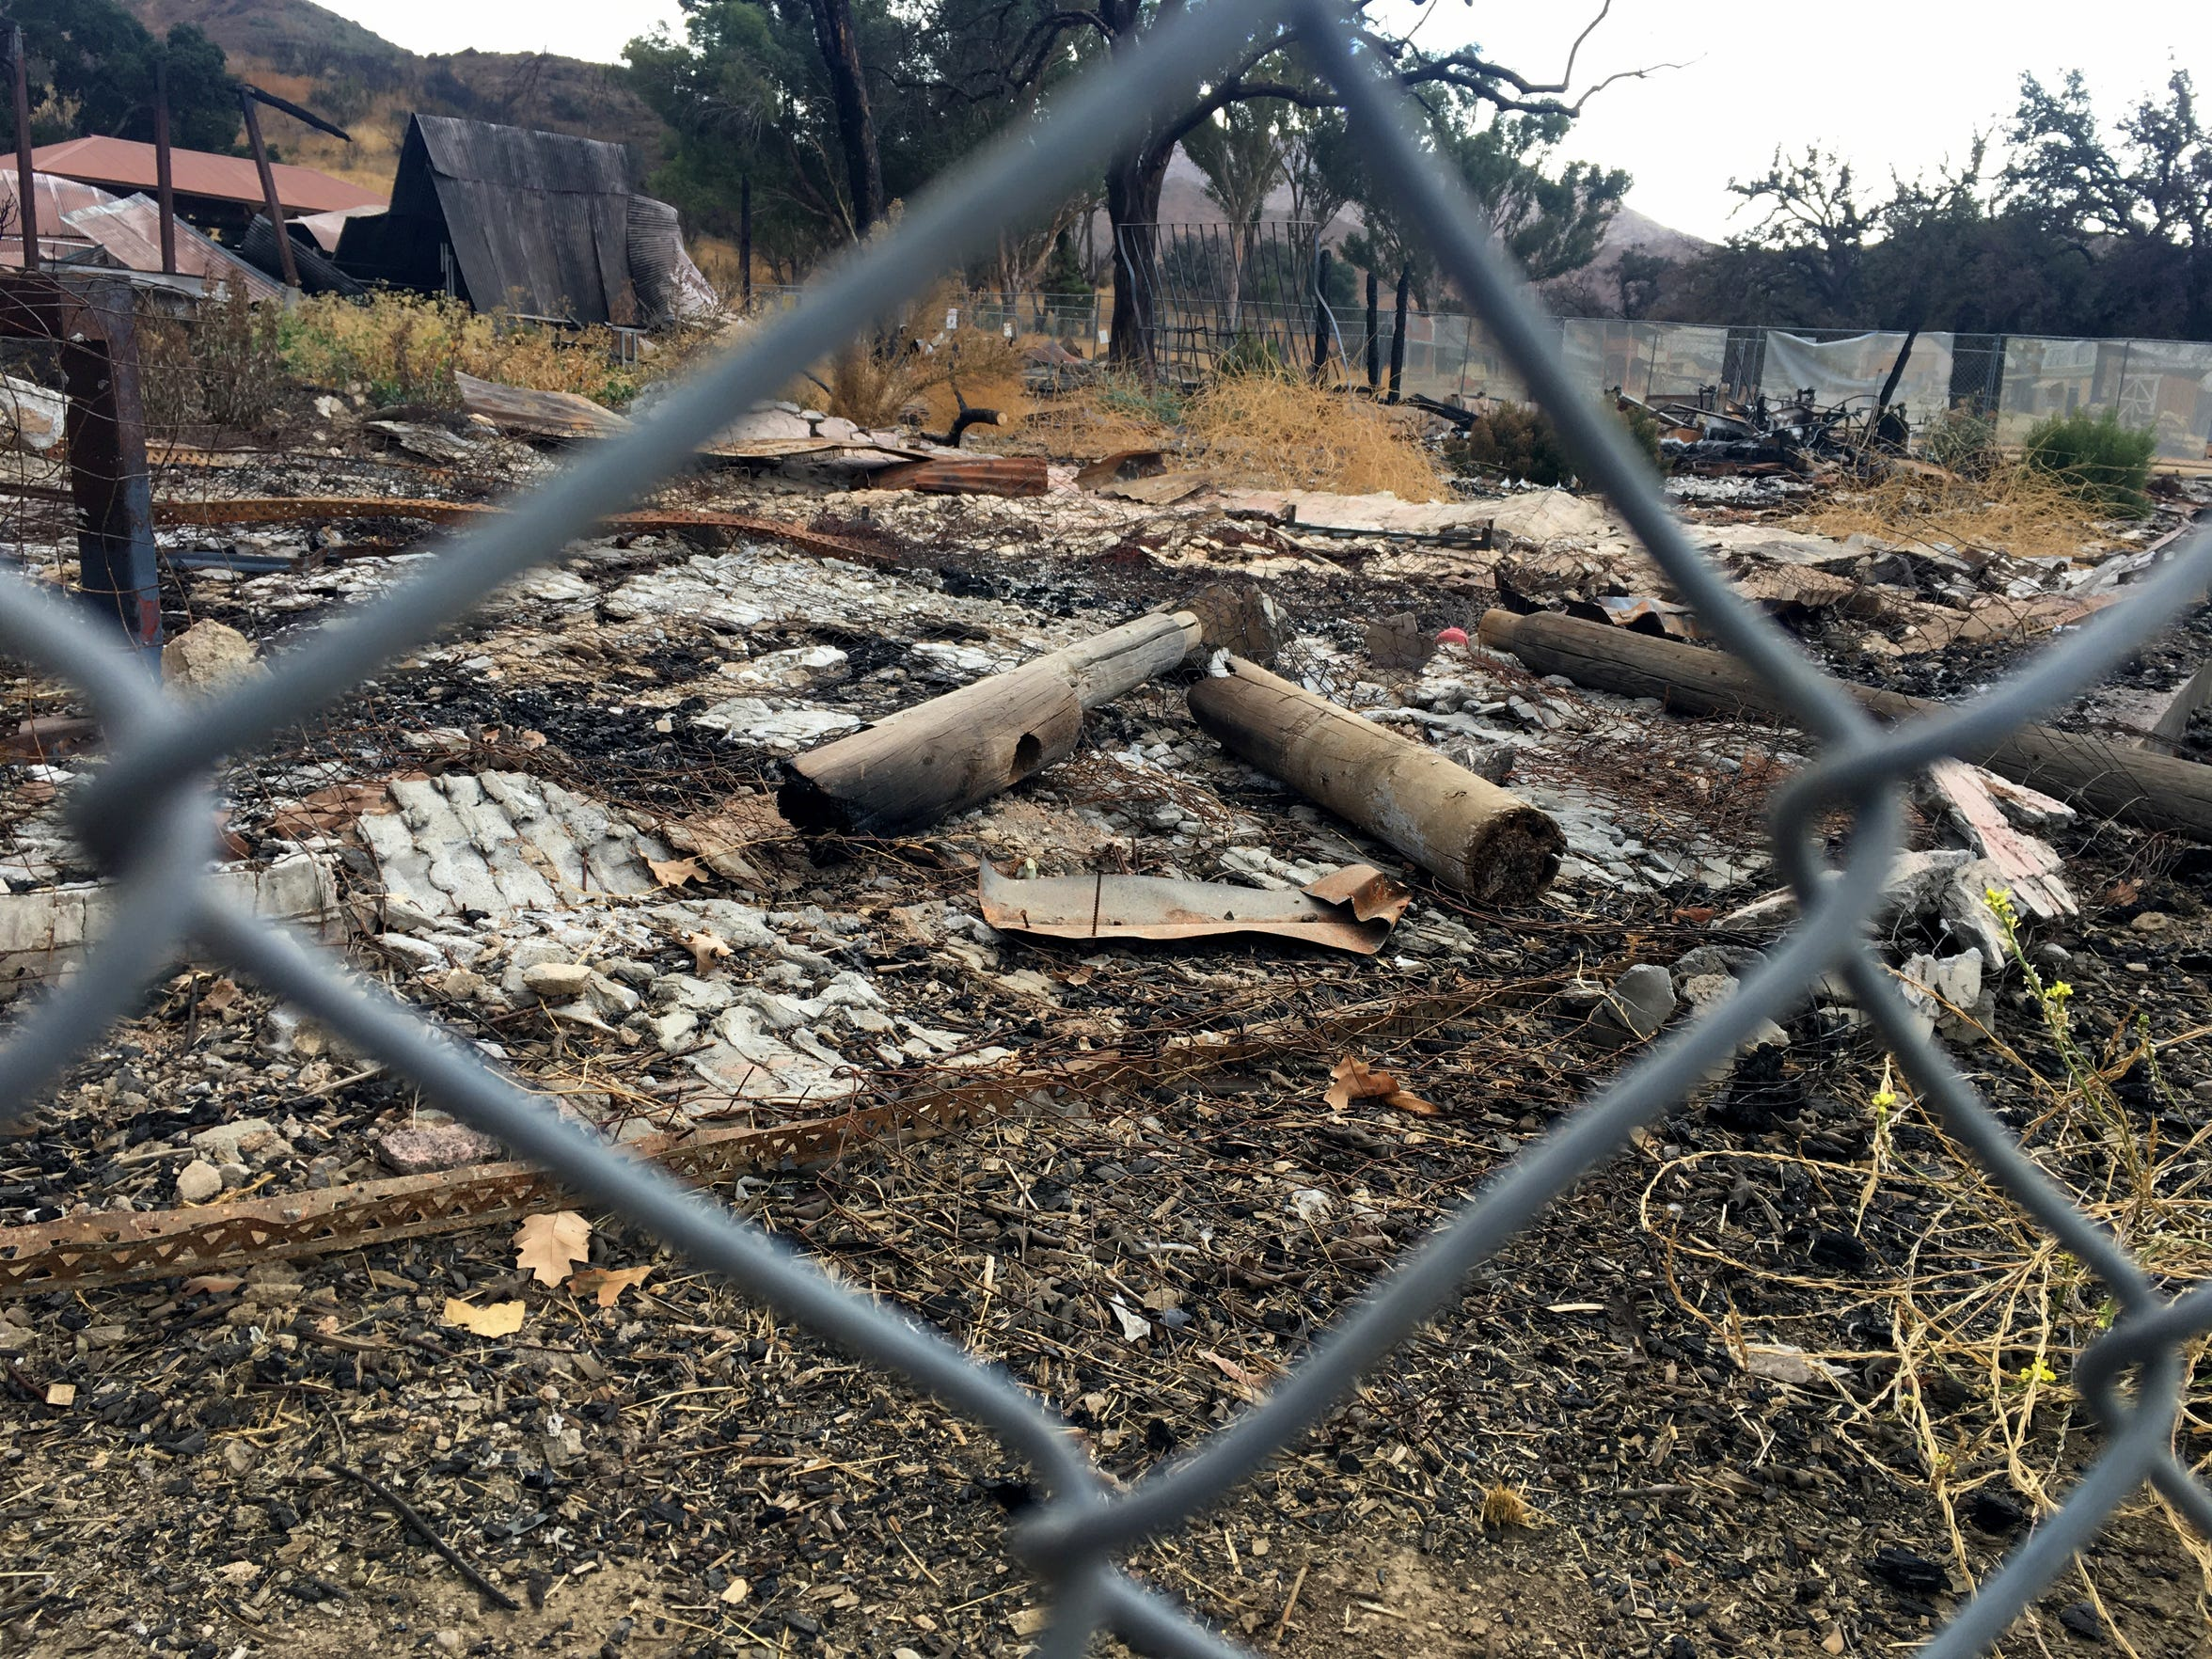 Debris at Paramount Ranch will soon be removed to make way for reconstruction of the western movie town, which was destroyed by the Woolsey Fire.